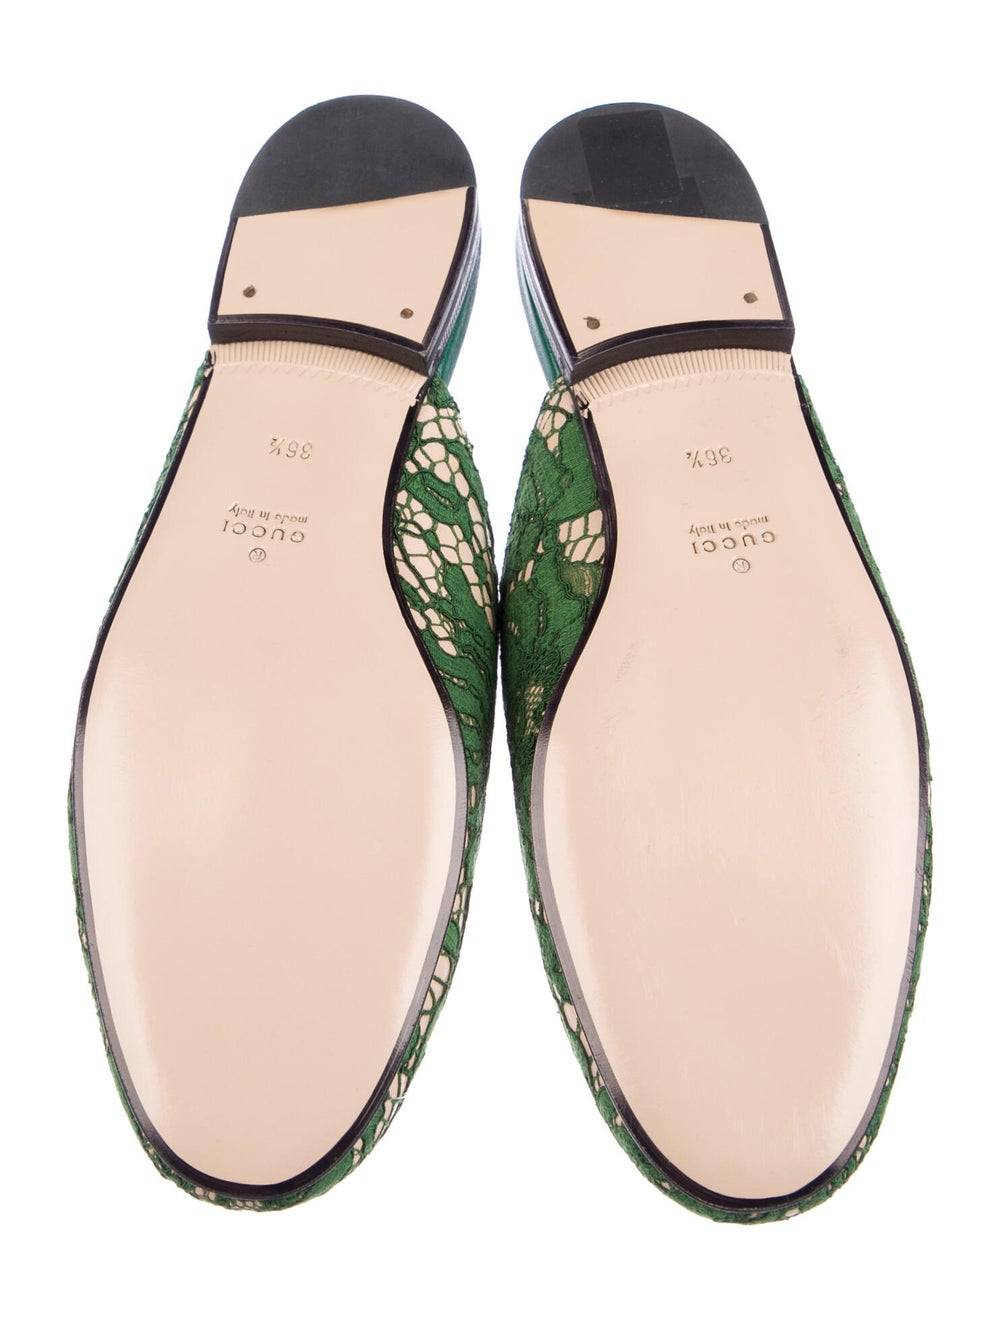 Gucci Princetown Horsebit Accent Mules Green - image 5